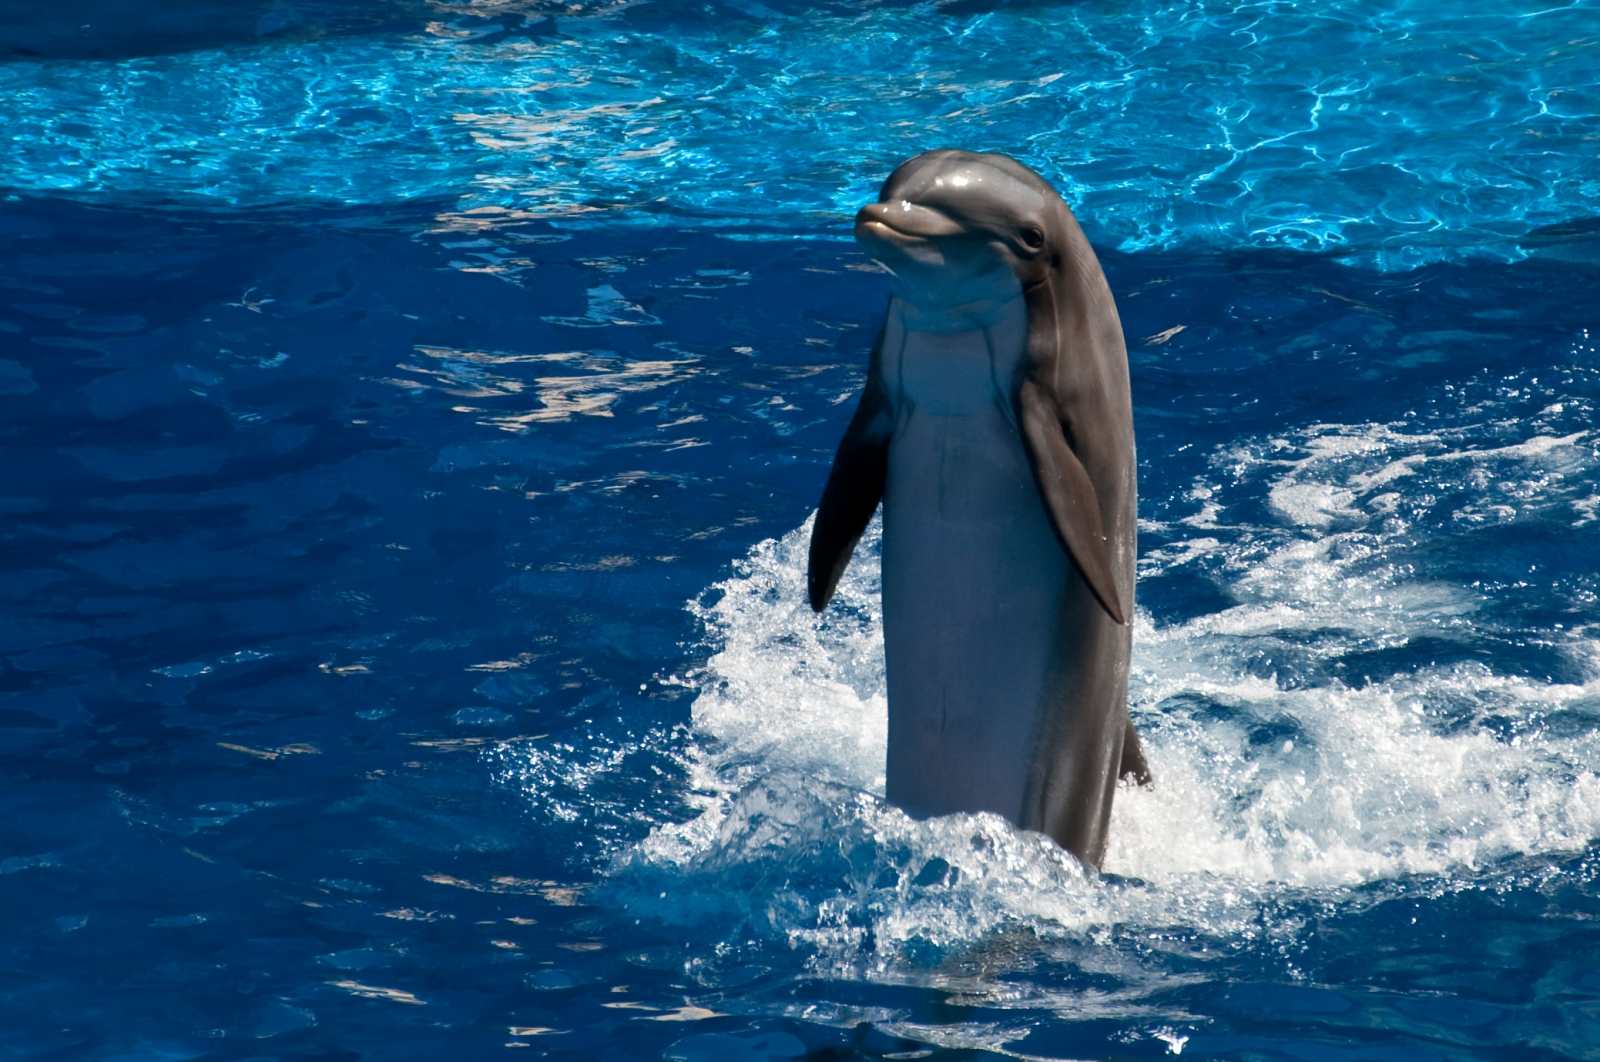 Dolphins Squeal with Delight Because They Are Happy, Study Finds